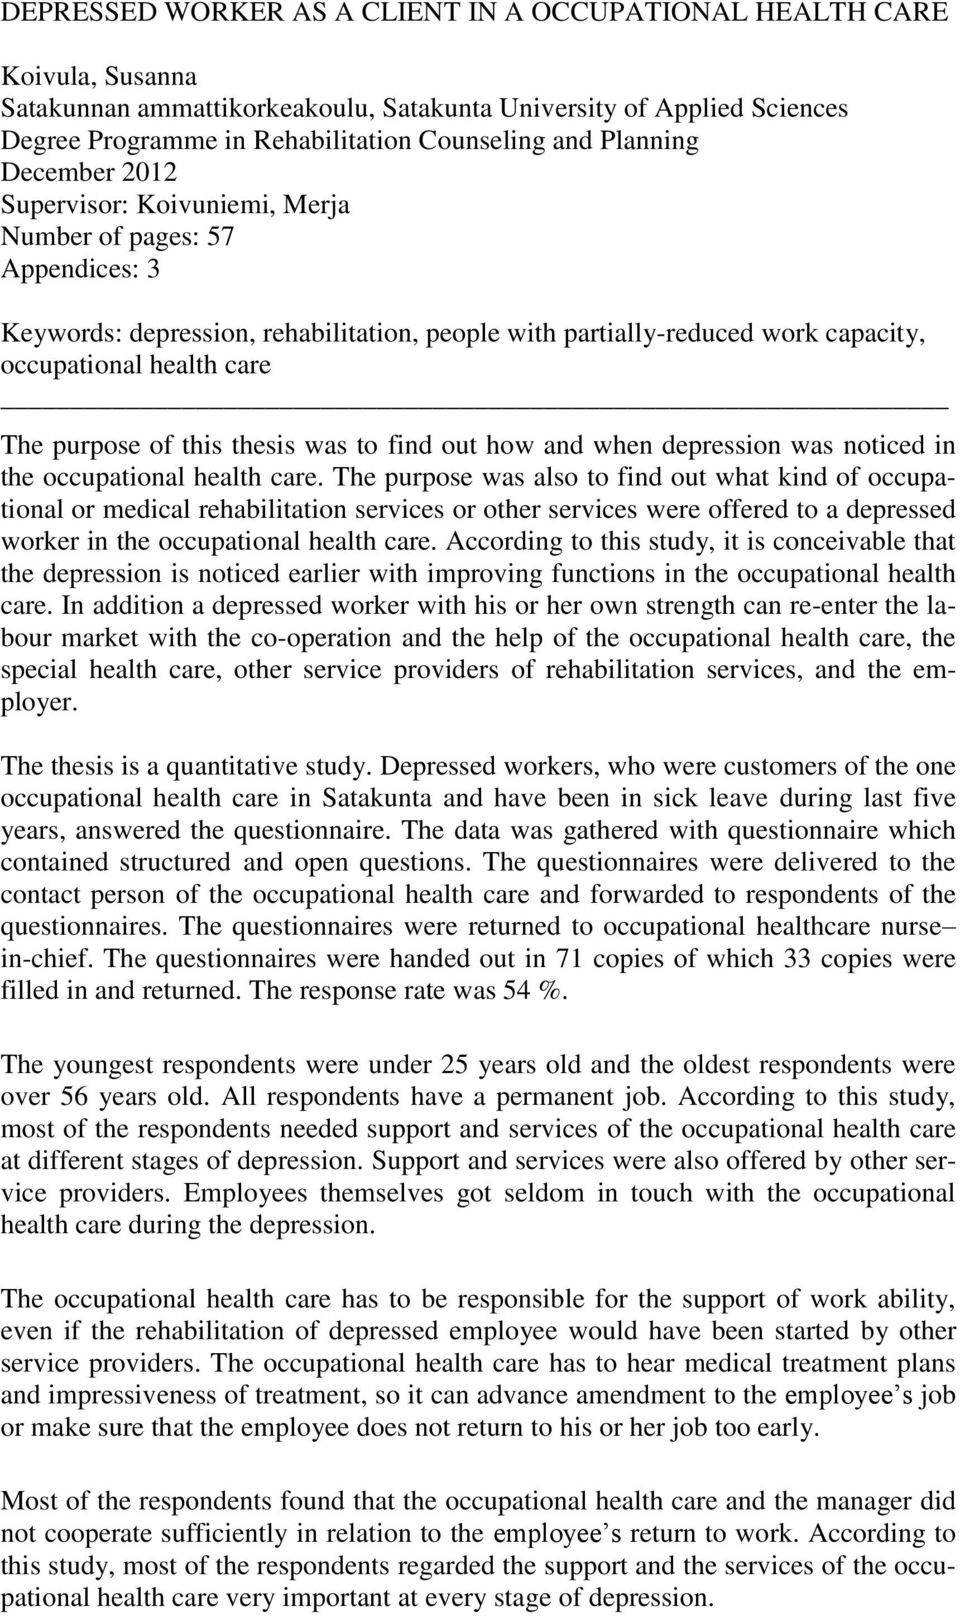 purpose of this thesis was to find out how and when depression was noticed in the occupational health care.